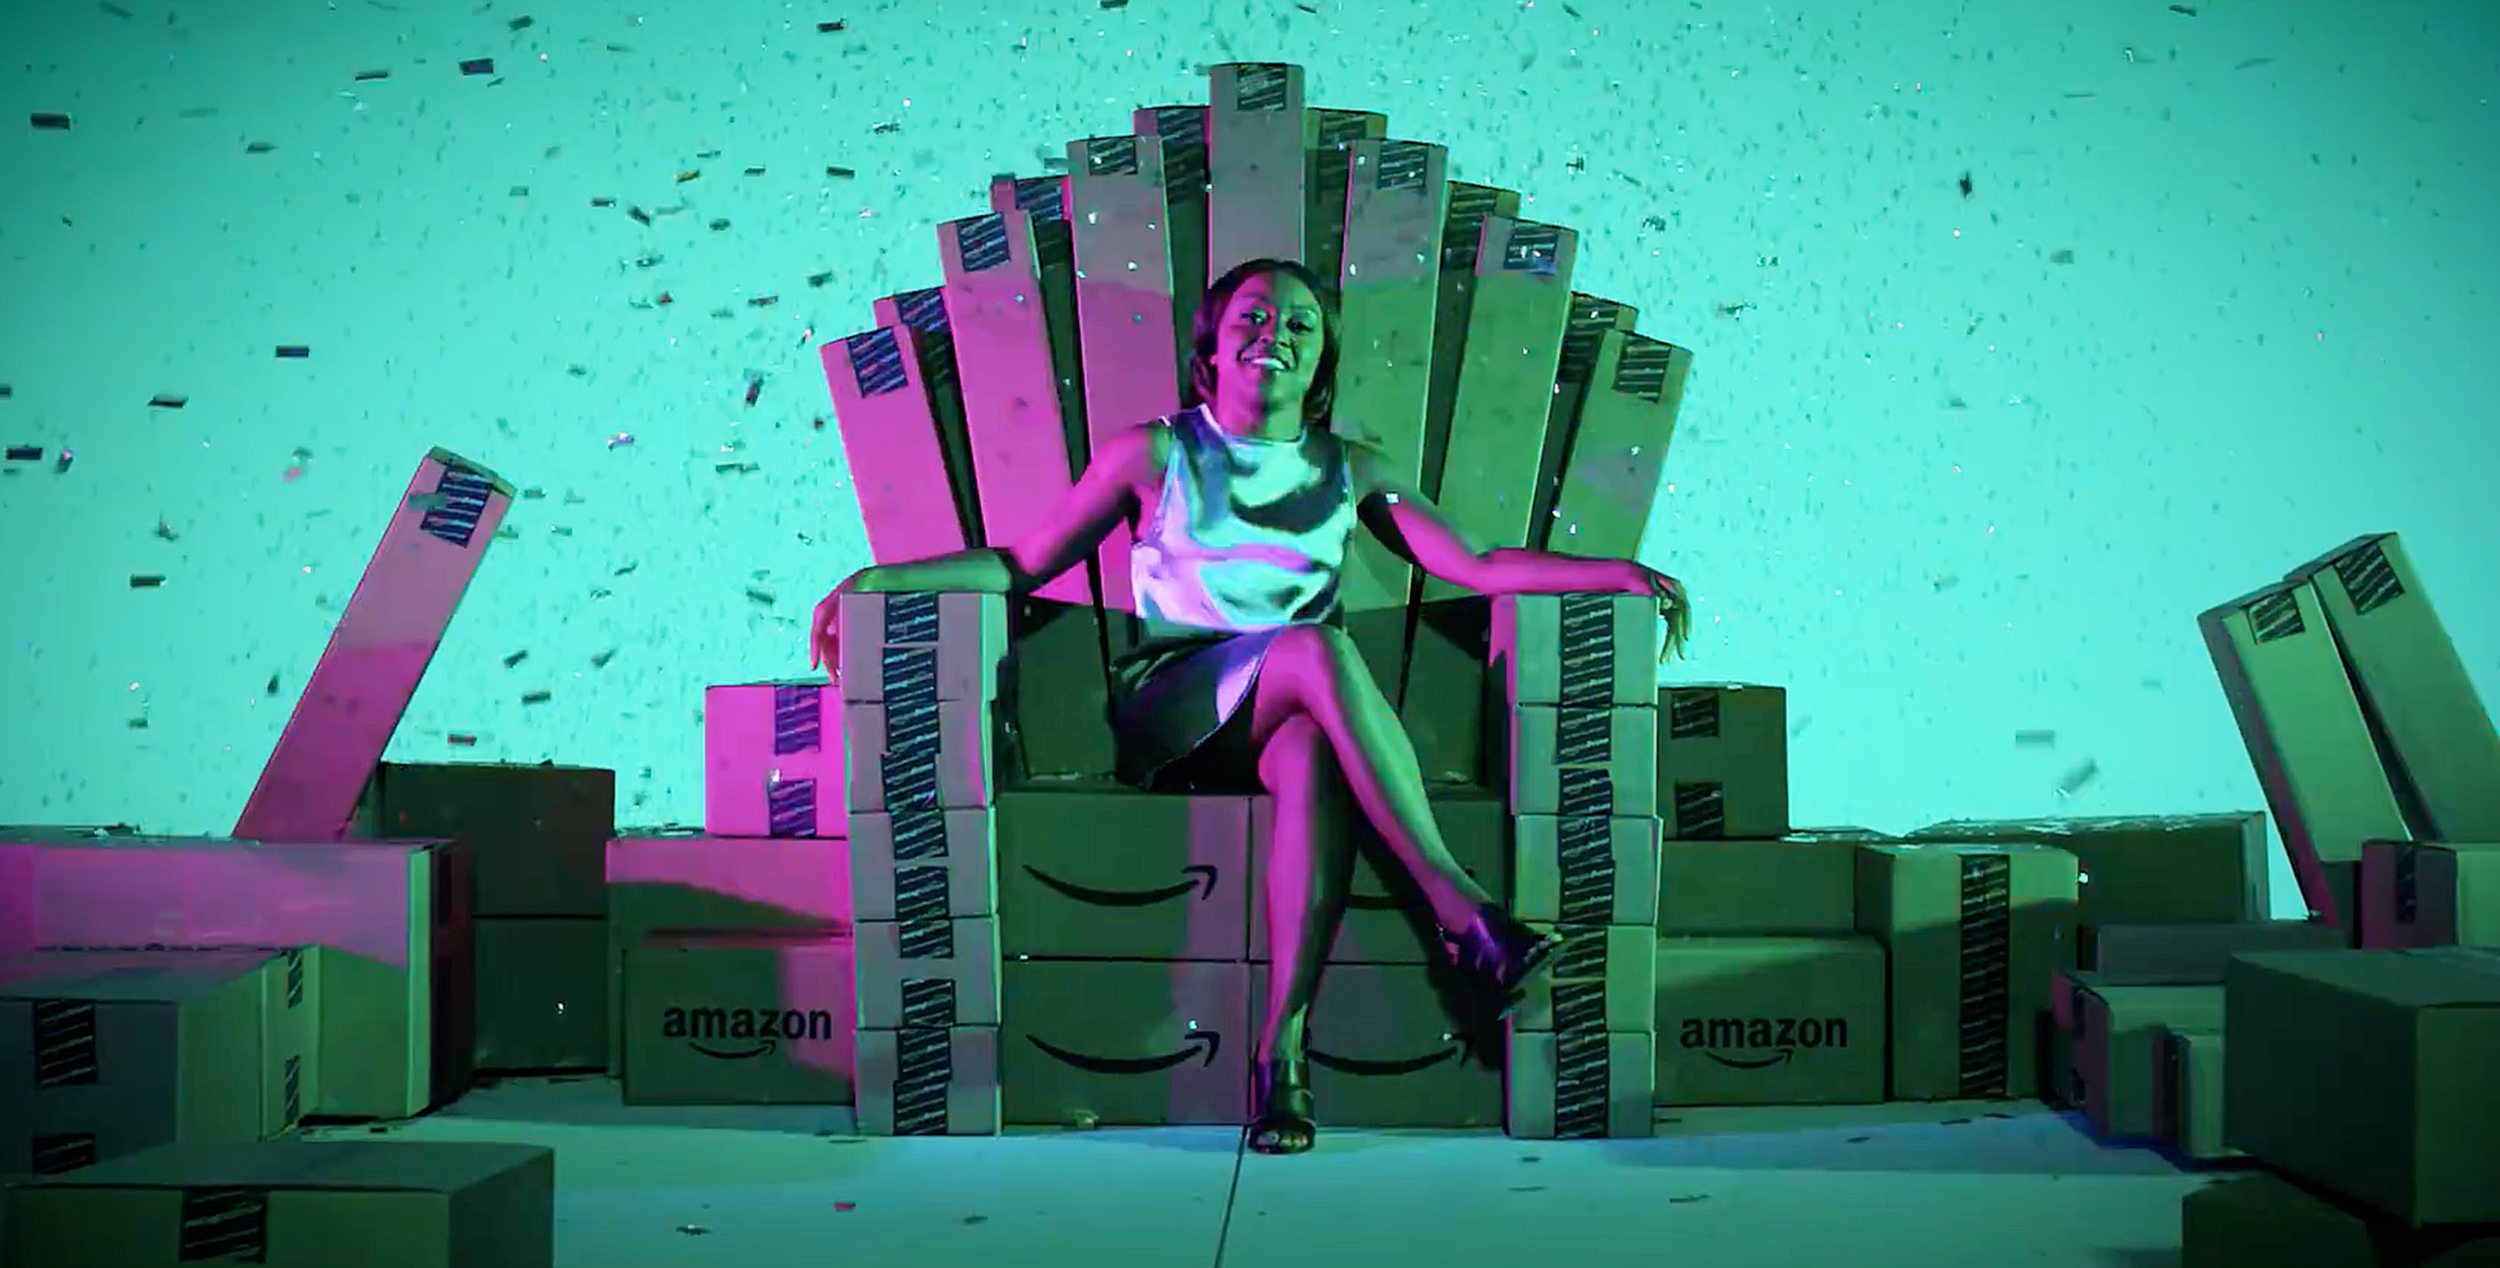 Prime Day Is Coming / Amazon - Director | Producer | EditorBranded promotional partnership with BuzzFeed's Quinta Brunson to create awareness for Amazon Prime Day.